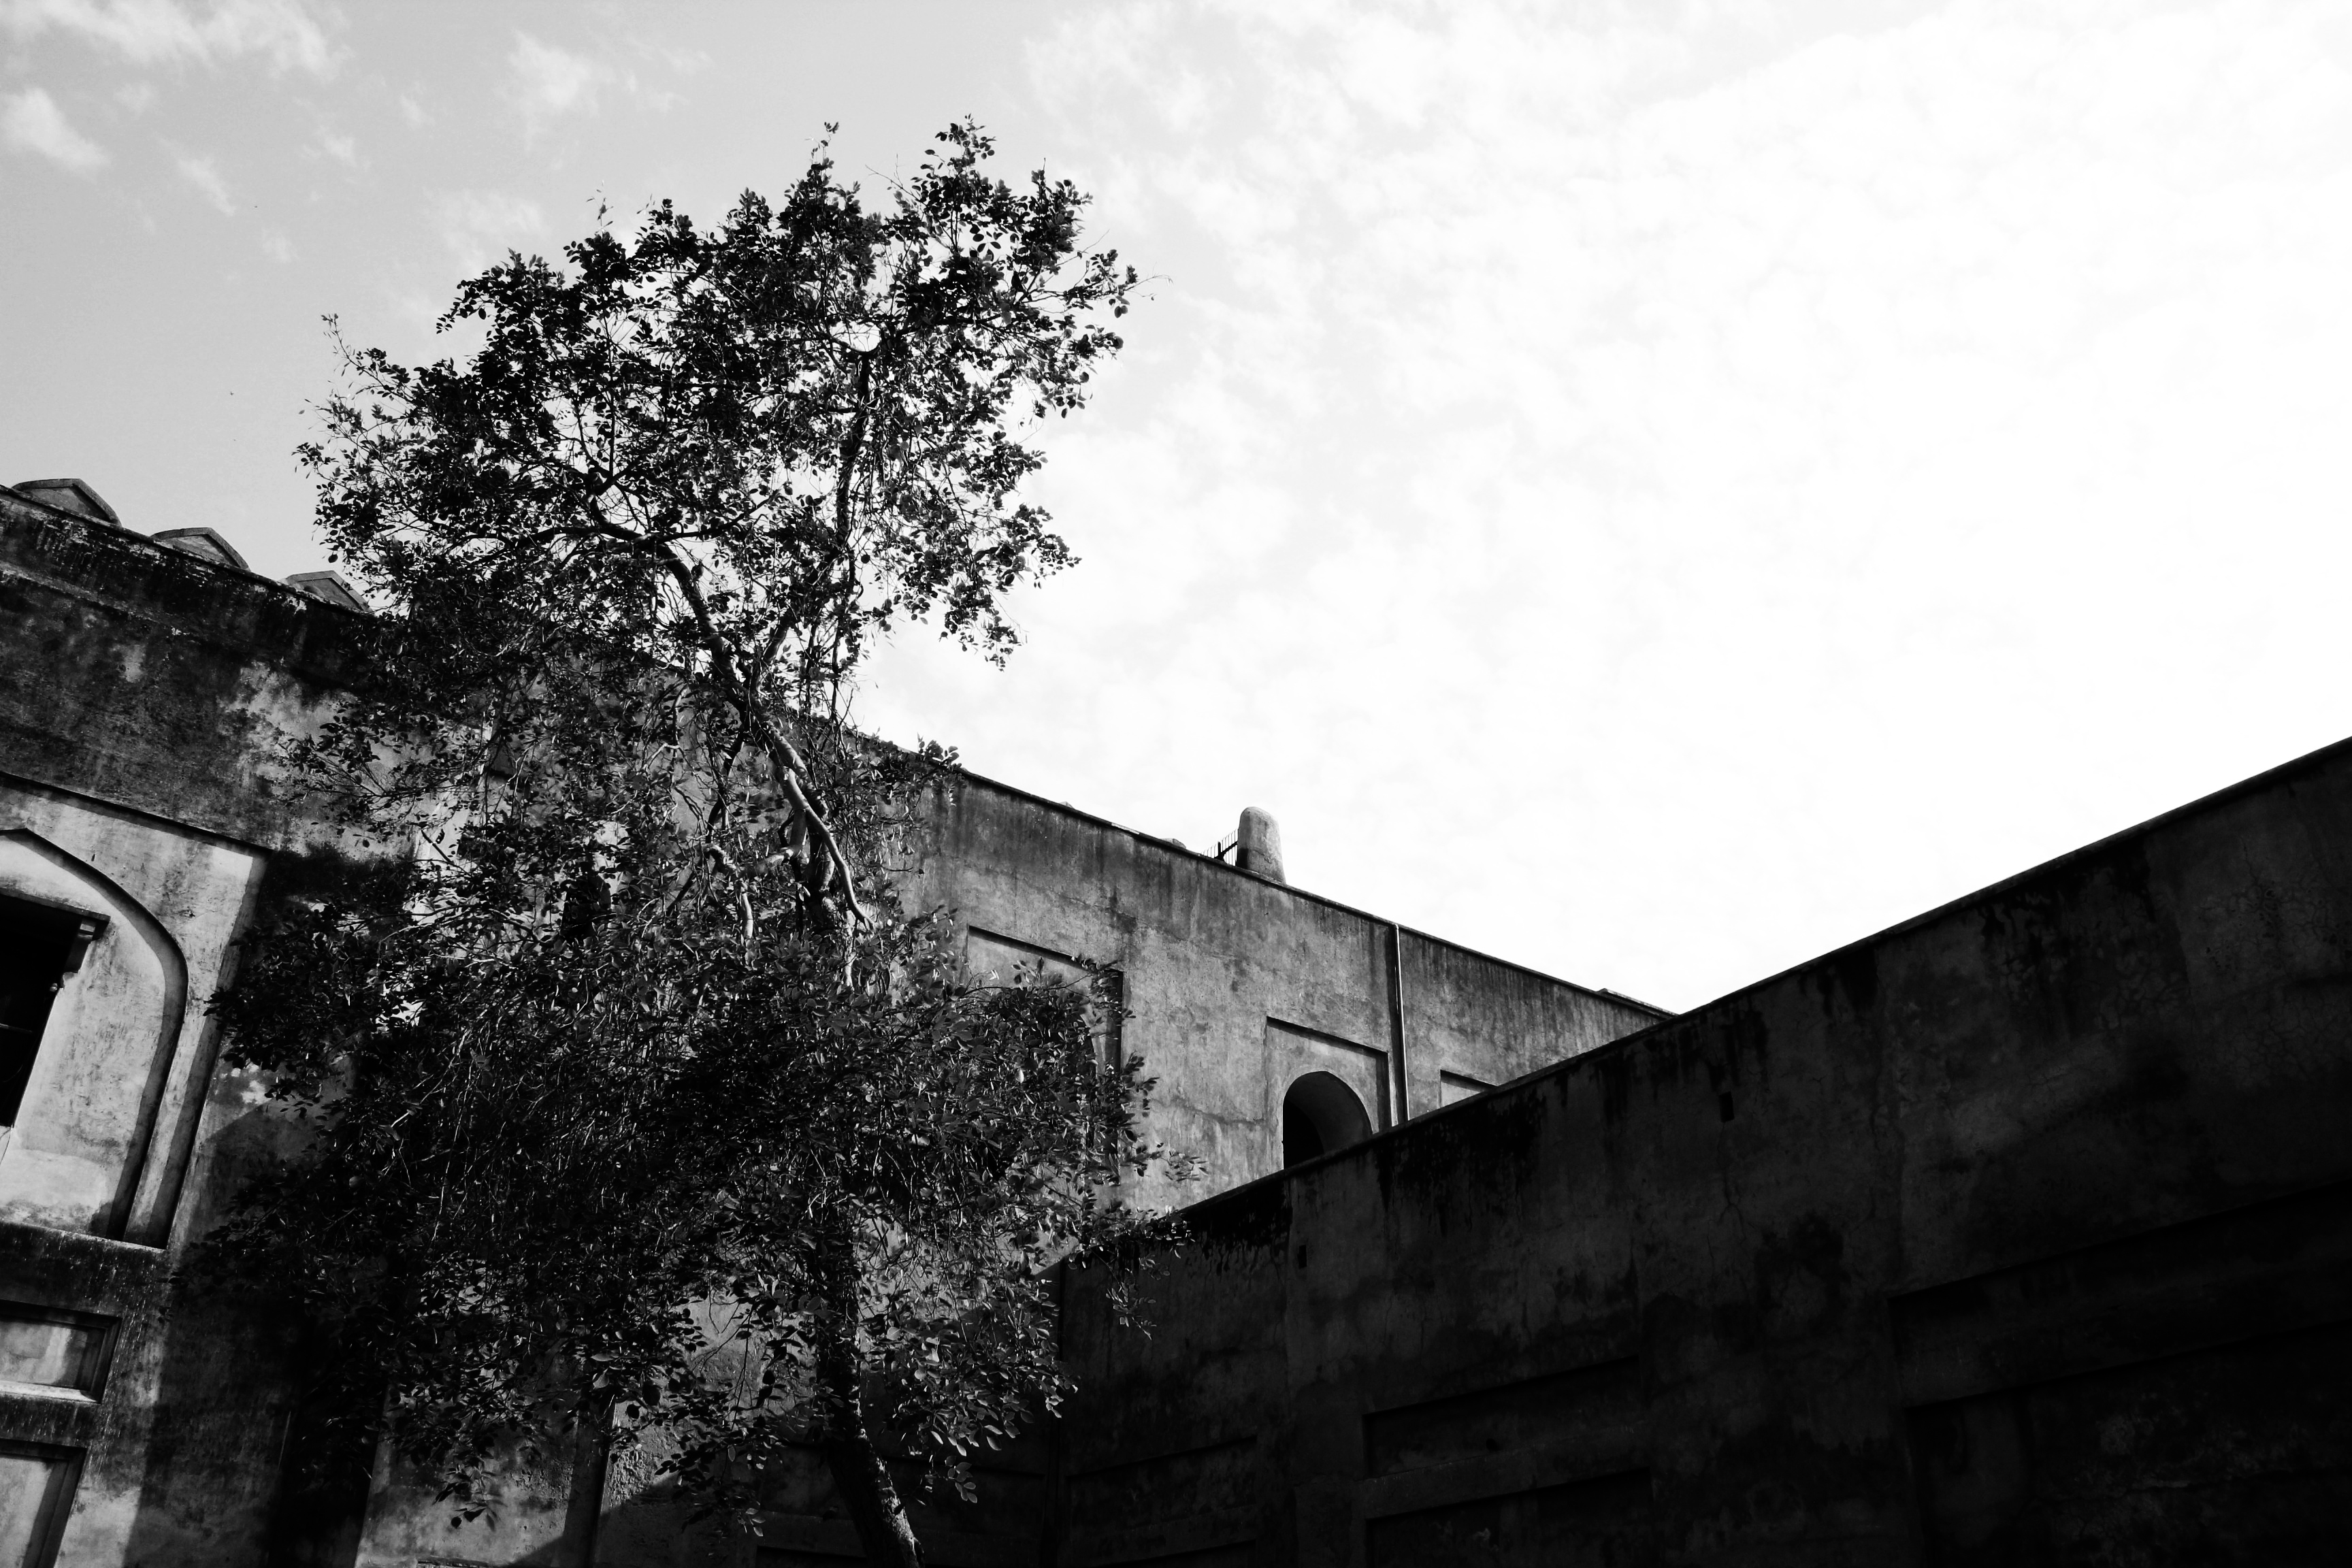 The Fort at Agra - Photo Essay by Amit Khanna (22).jpg